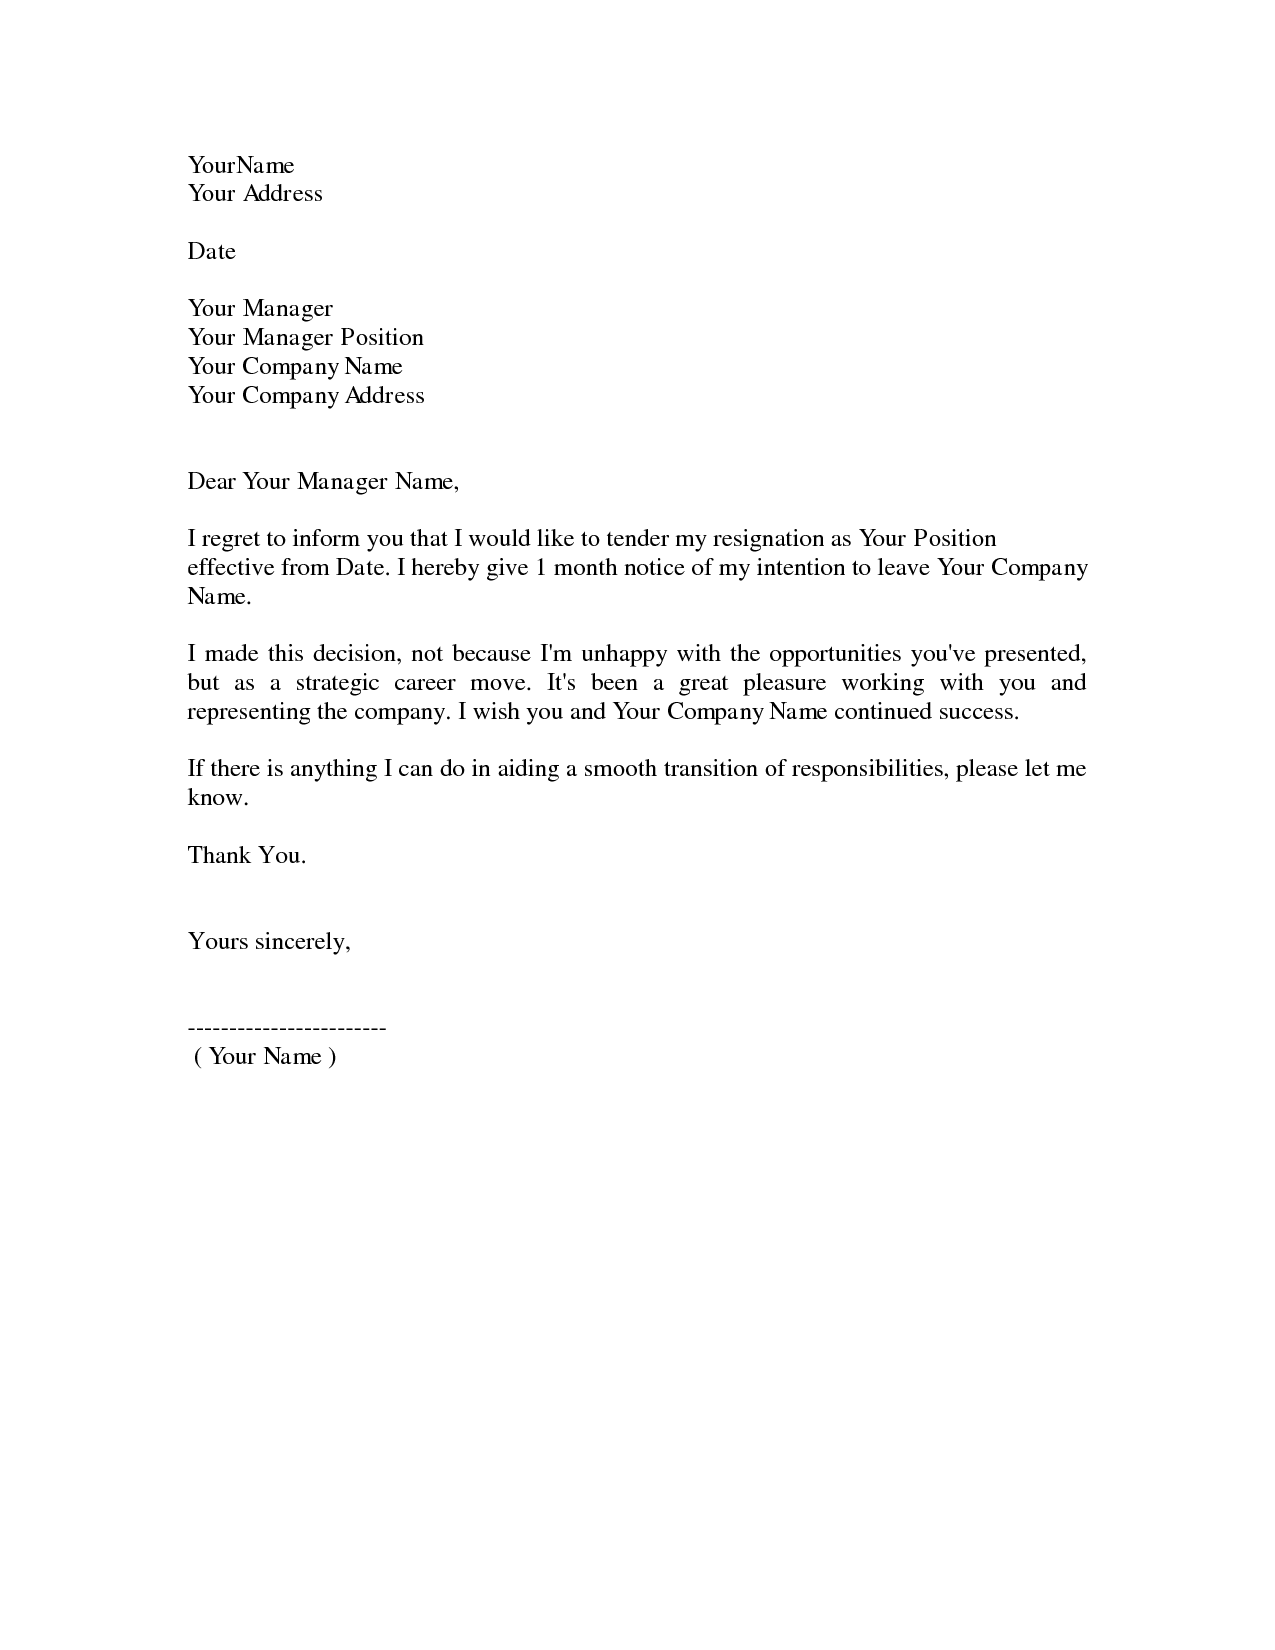 Resignations Letters sample loan agreement community center – Rn Resignation Letter